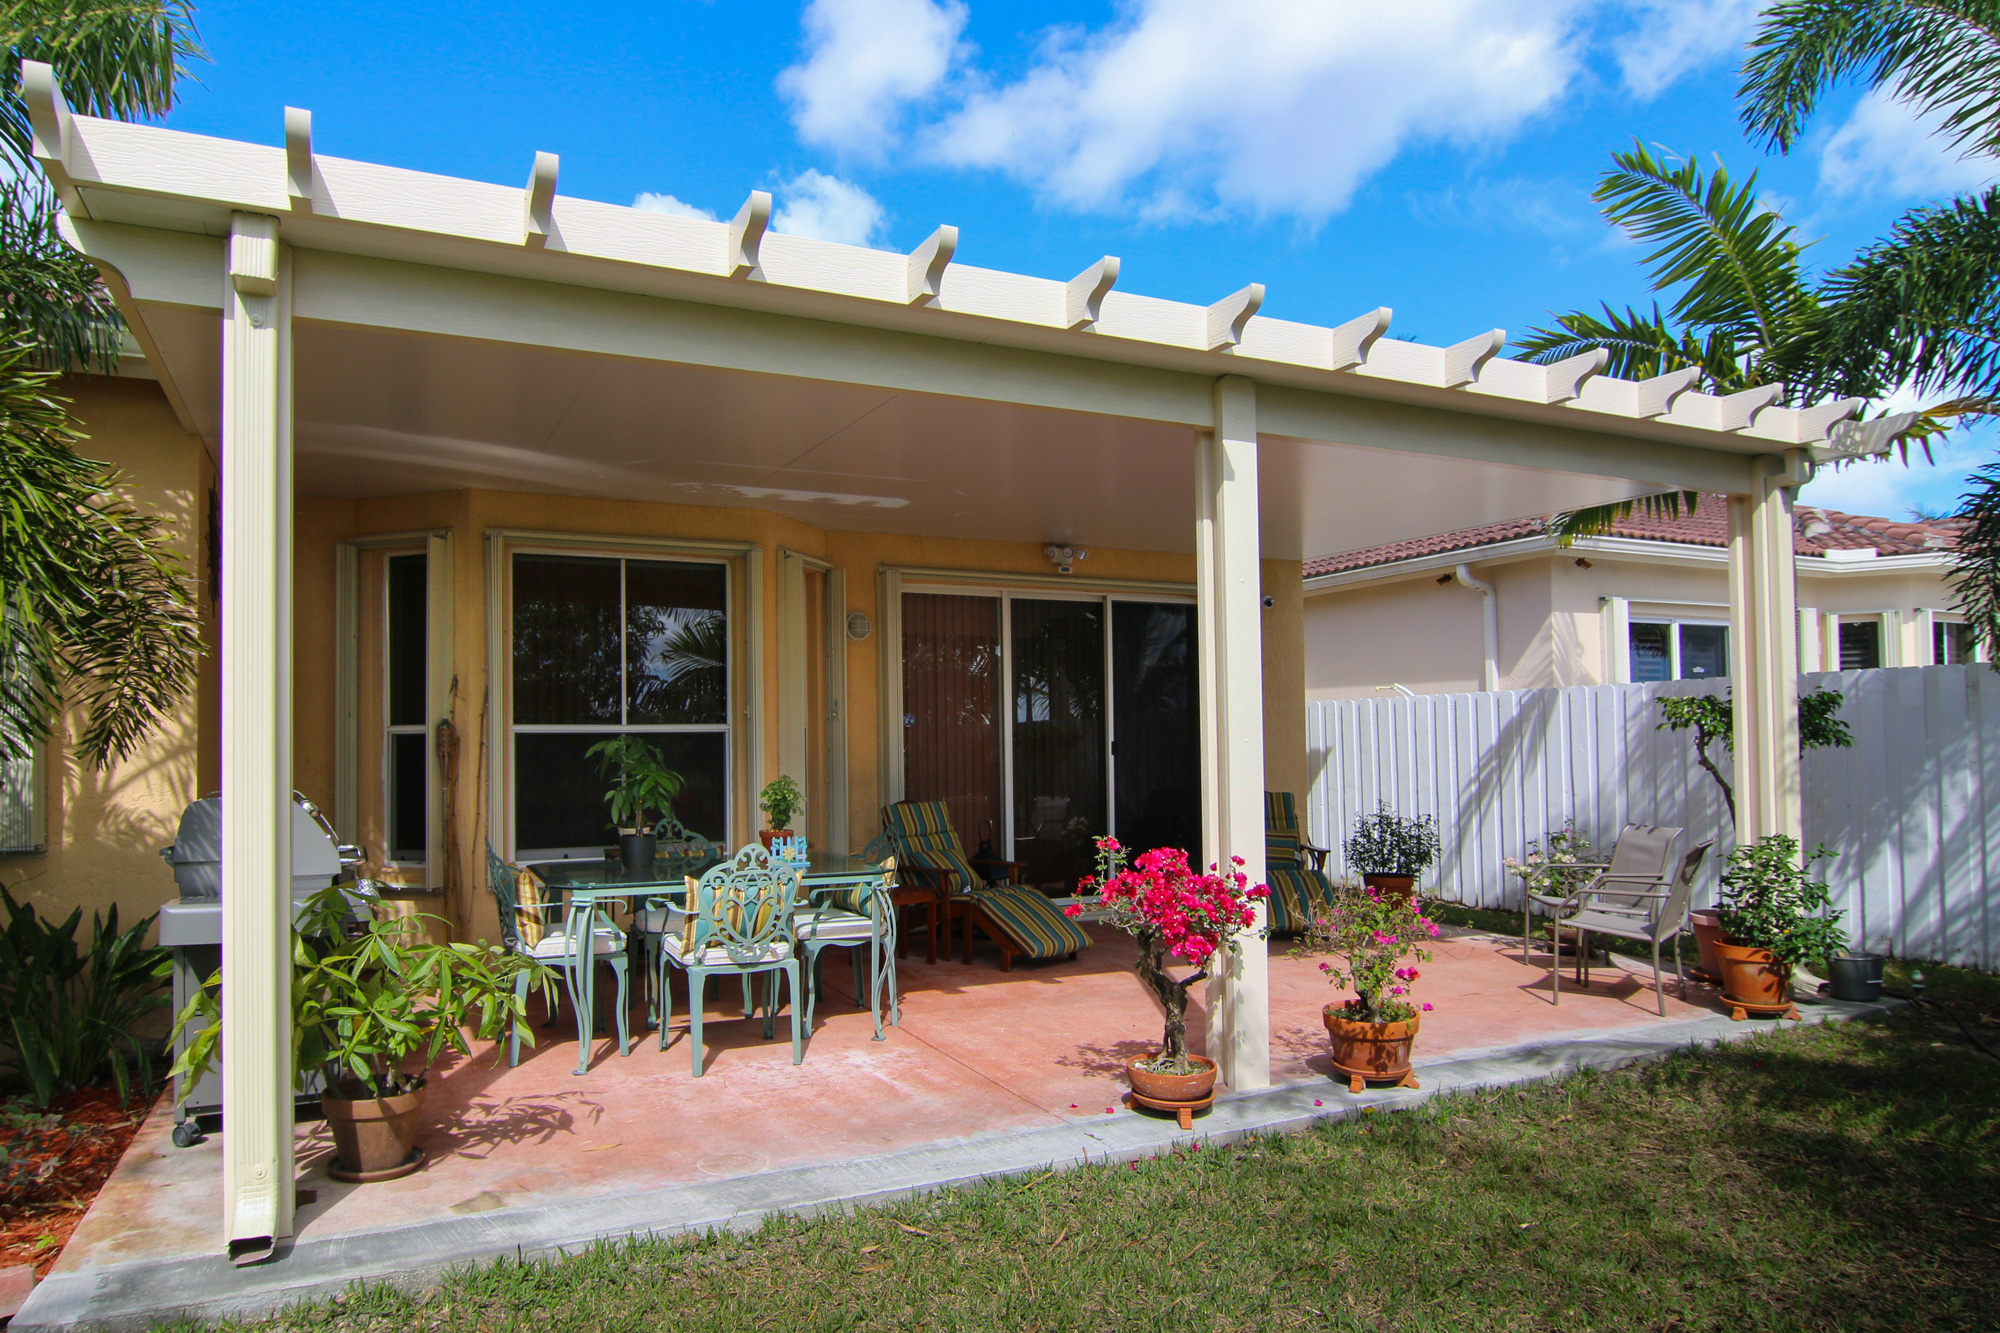 Any-patio-roof-can-be-dressed-up-with-our-Pergola-style-Alumawood-wraps-to-give-modern-materials-a-more-classic-look.